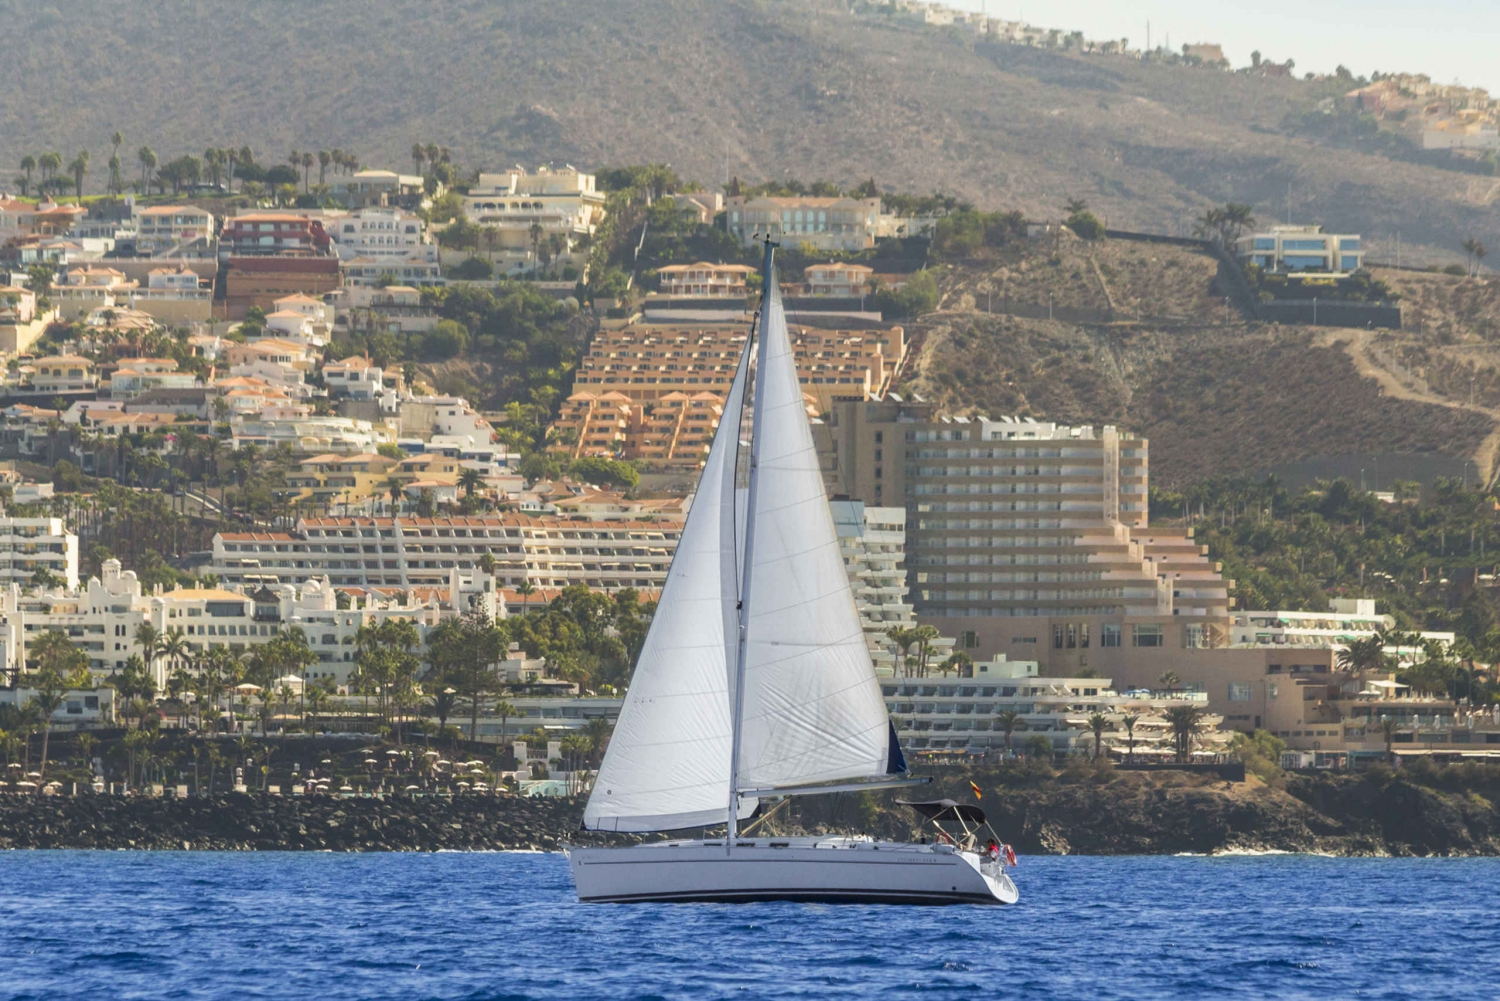 Exclusive 6-Hour Luxury Sailboat Charter in Tenerife